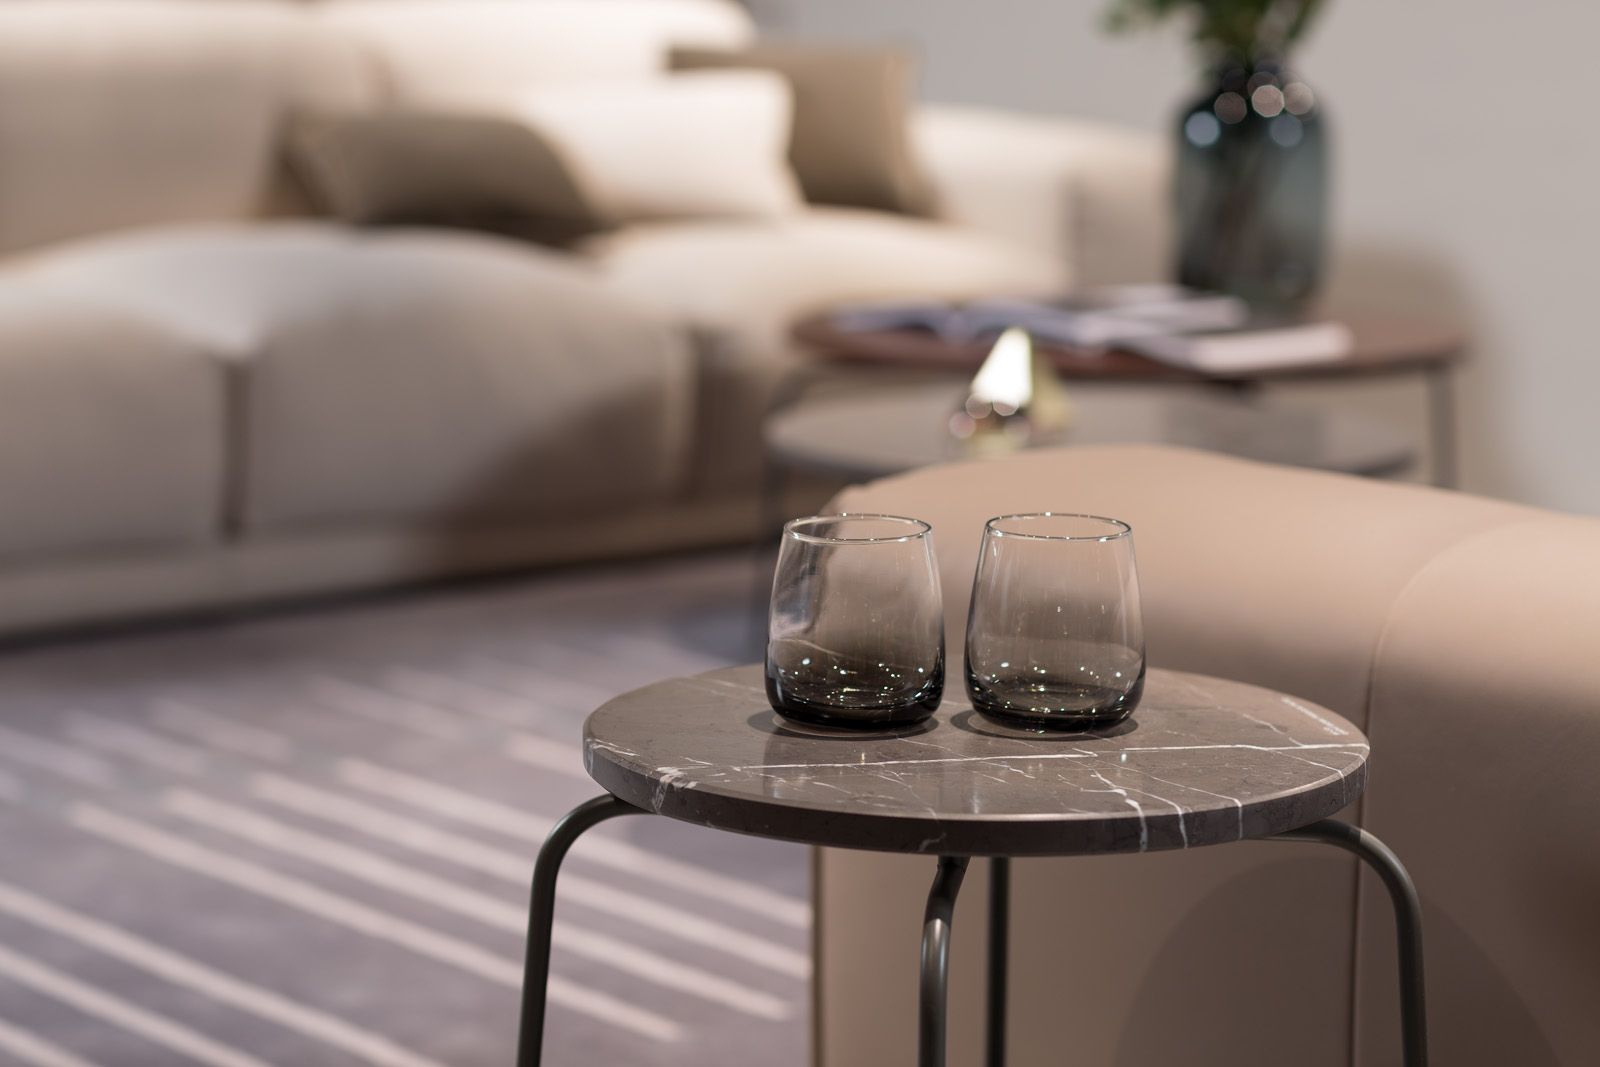 comfortable rolf benz sofa. Visit Rolf Benz At The IMM Cologne! Come Have A Seat Our Comfortable Sofas, Armchairs And Chairs Or Closer Look Beautiful Coffee Tables. Sofa